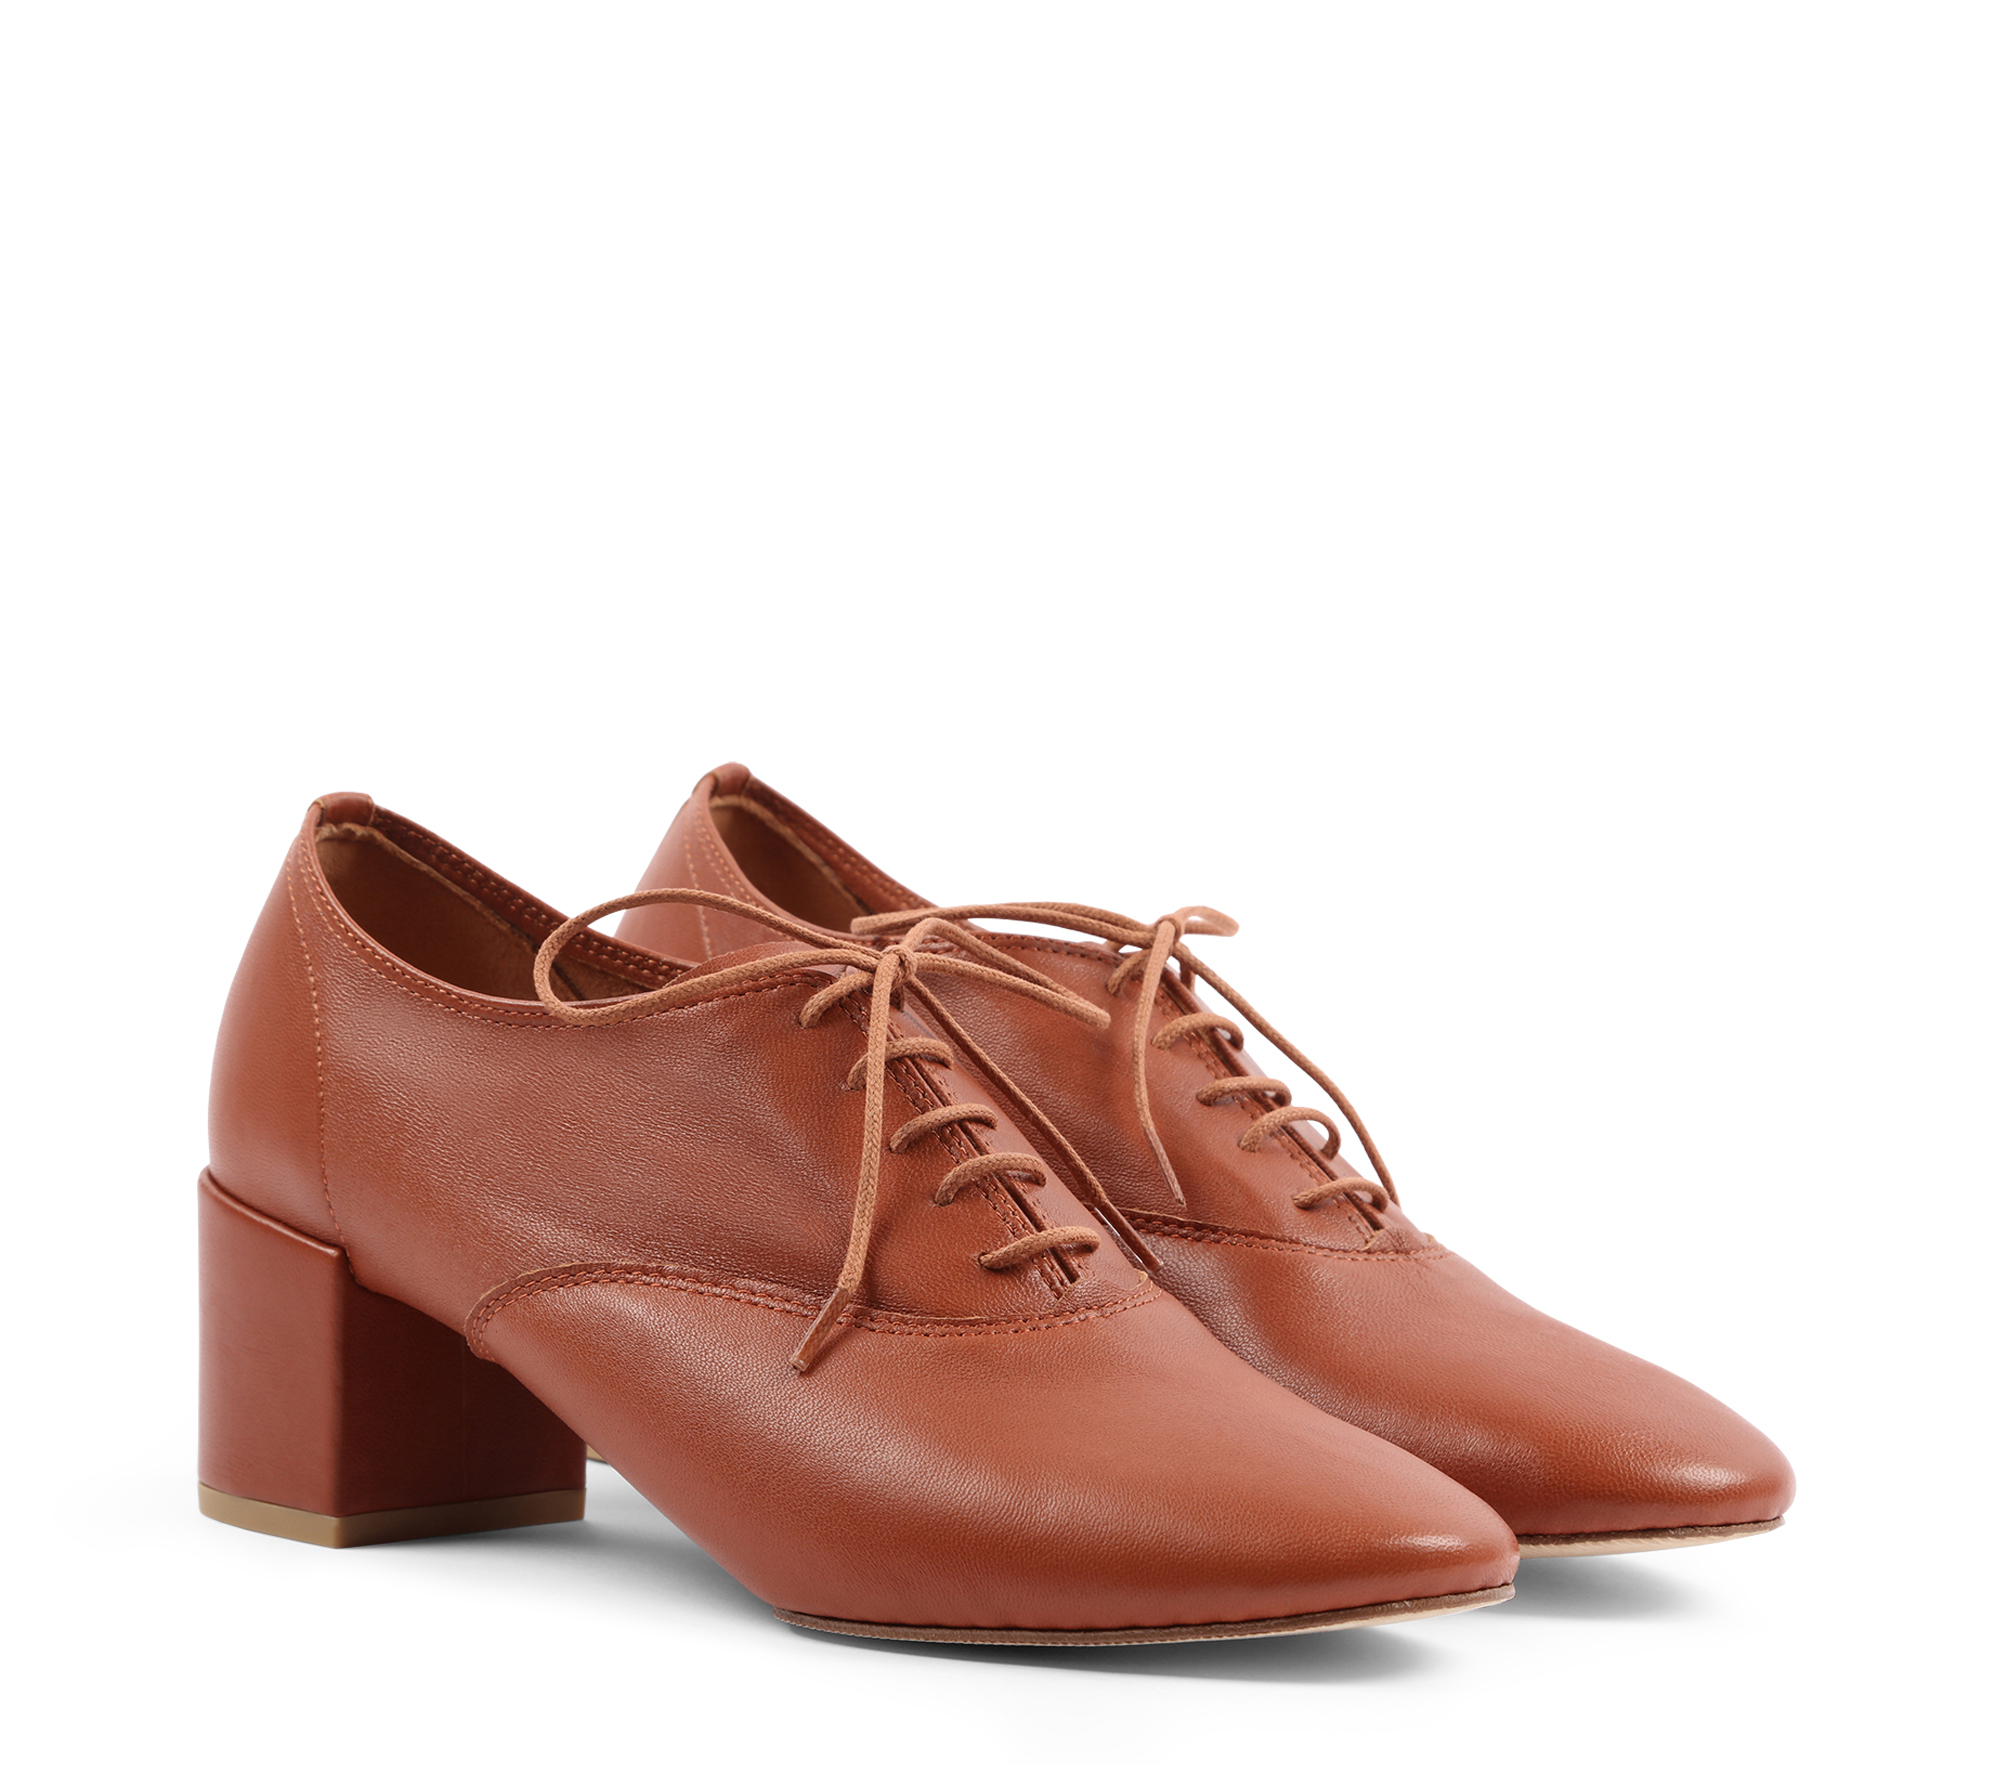 Max oxford shoes